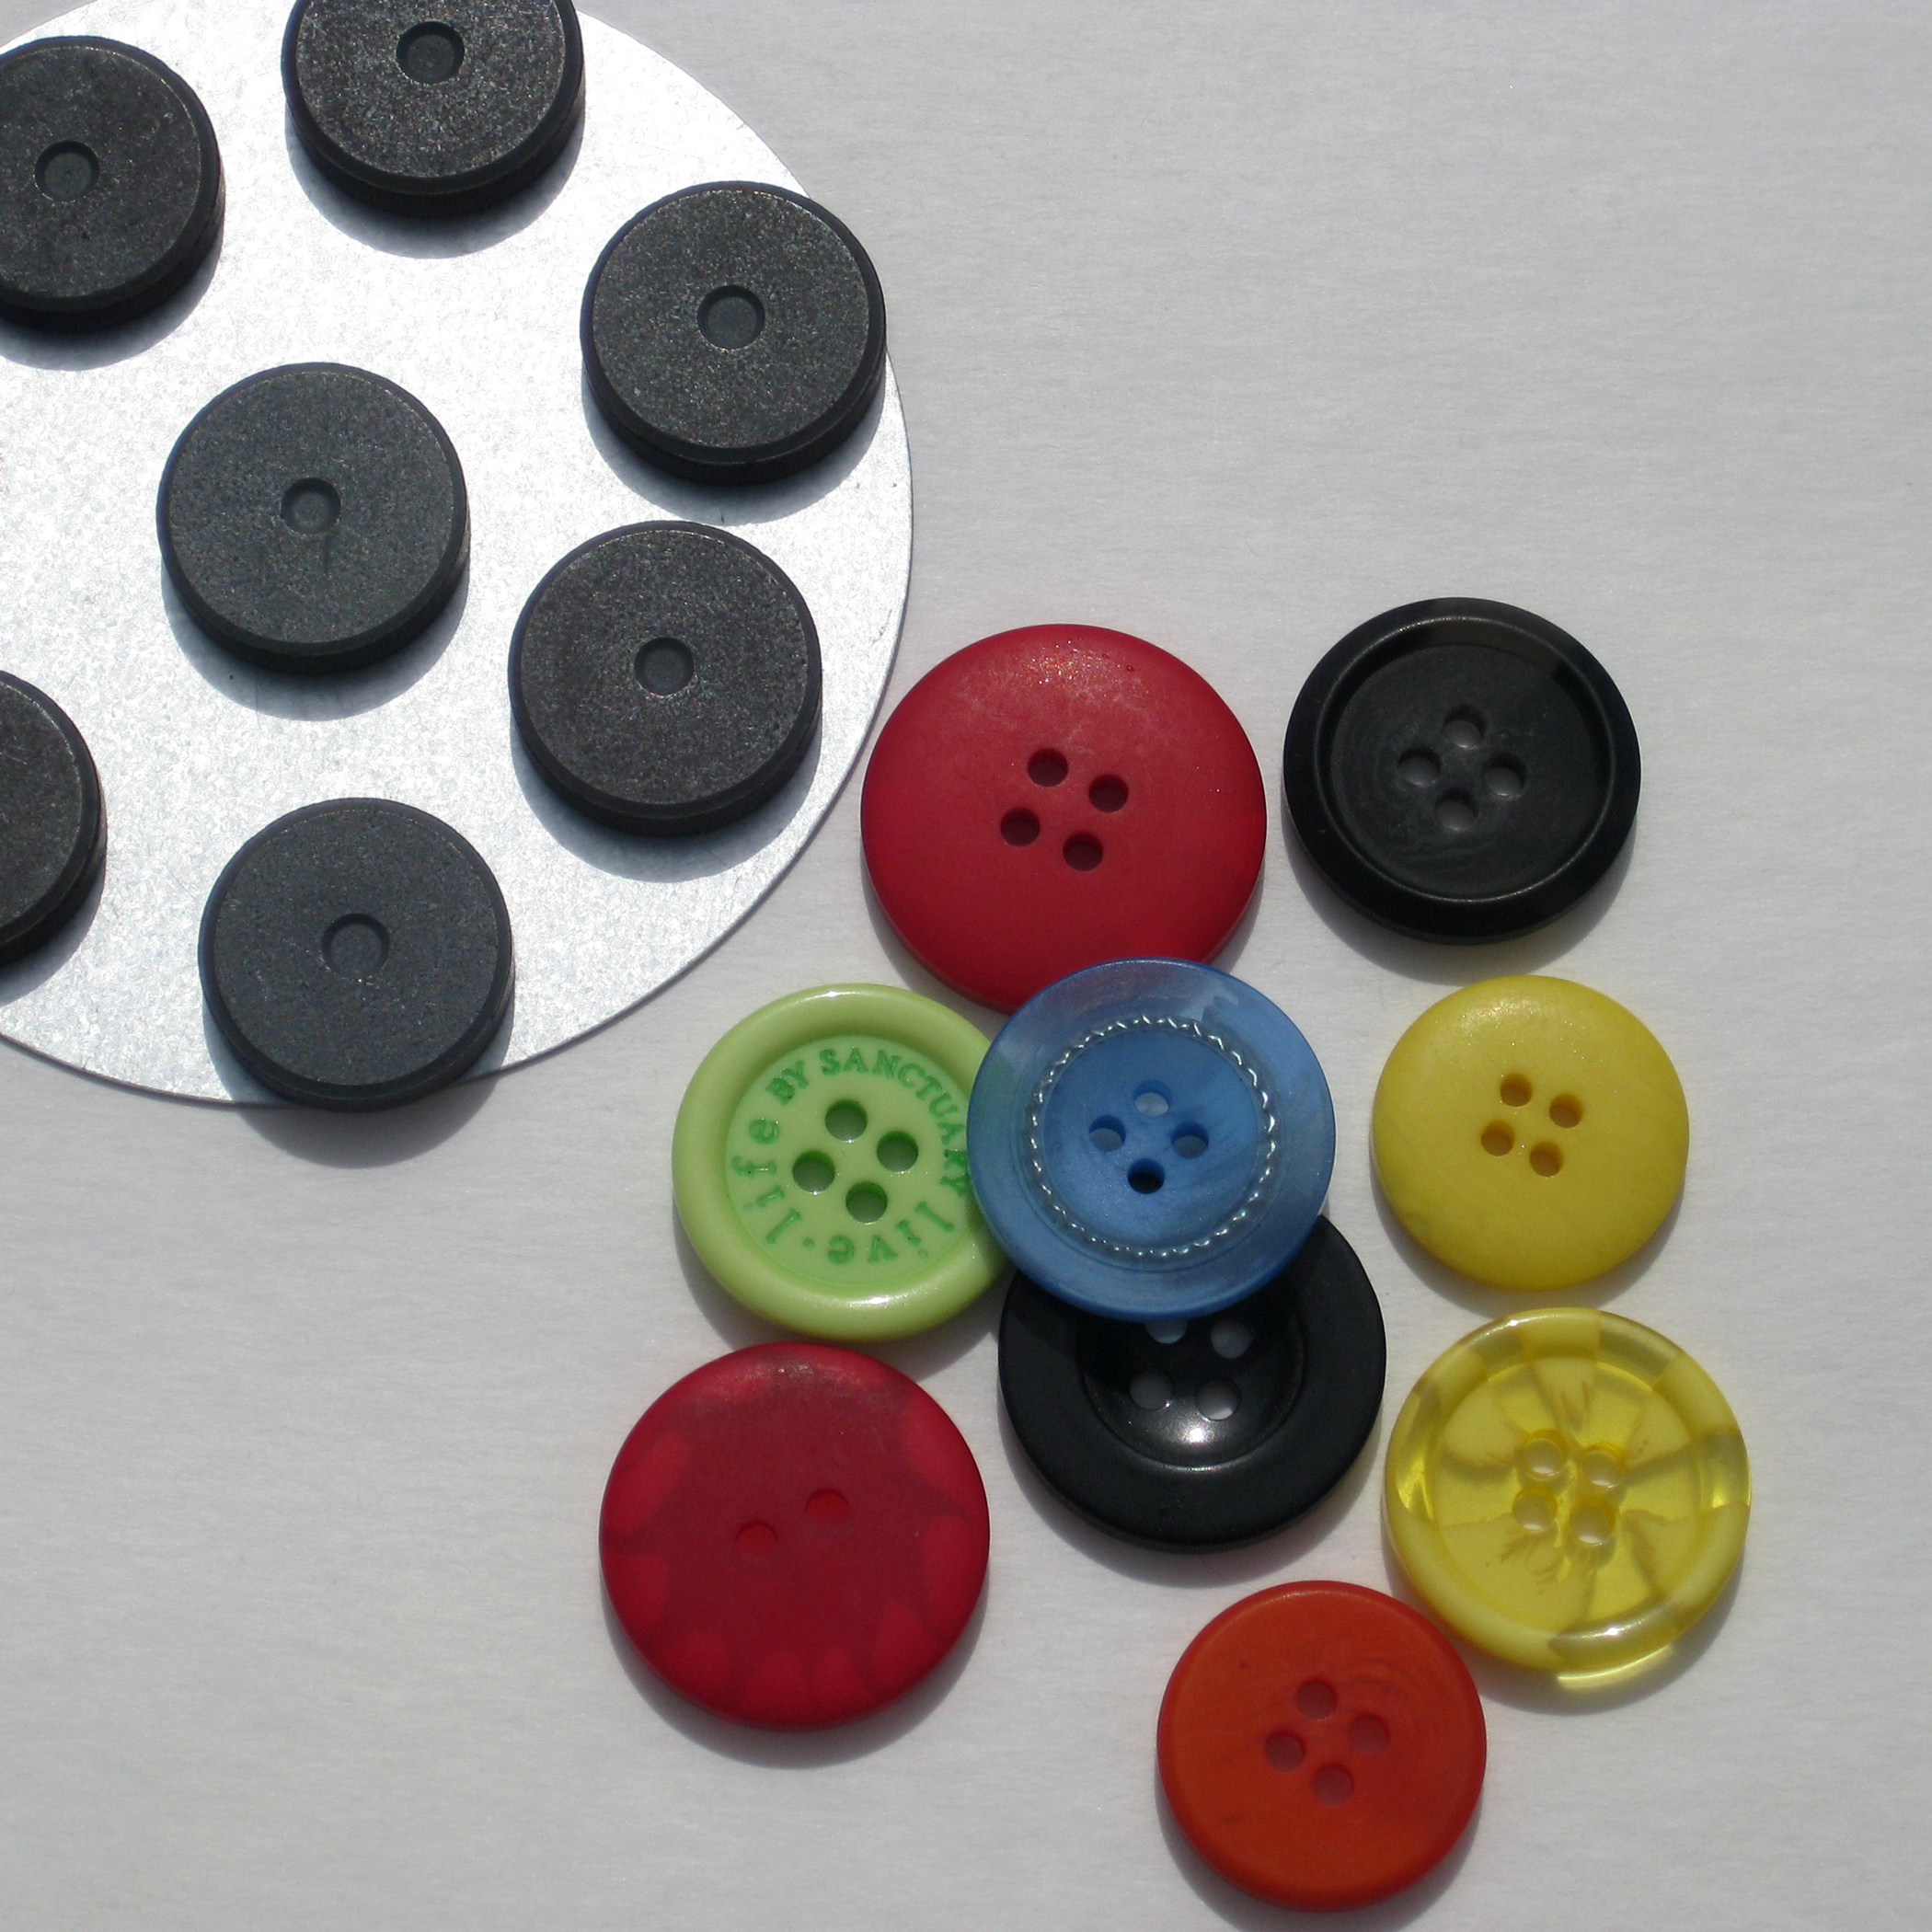 Making Button Magnets